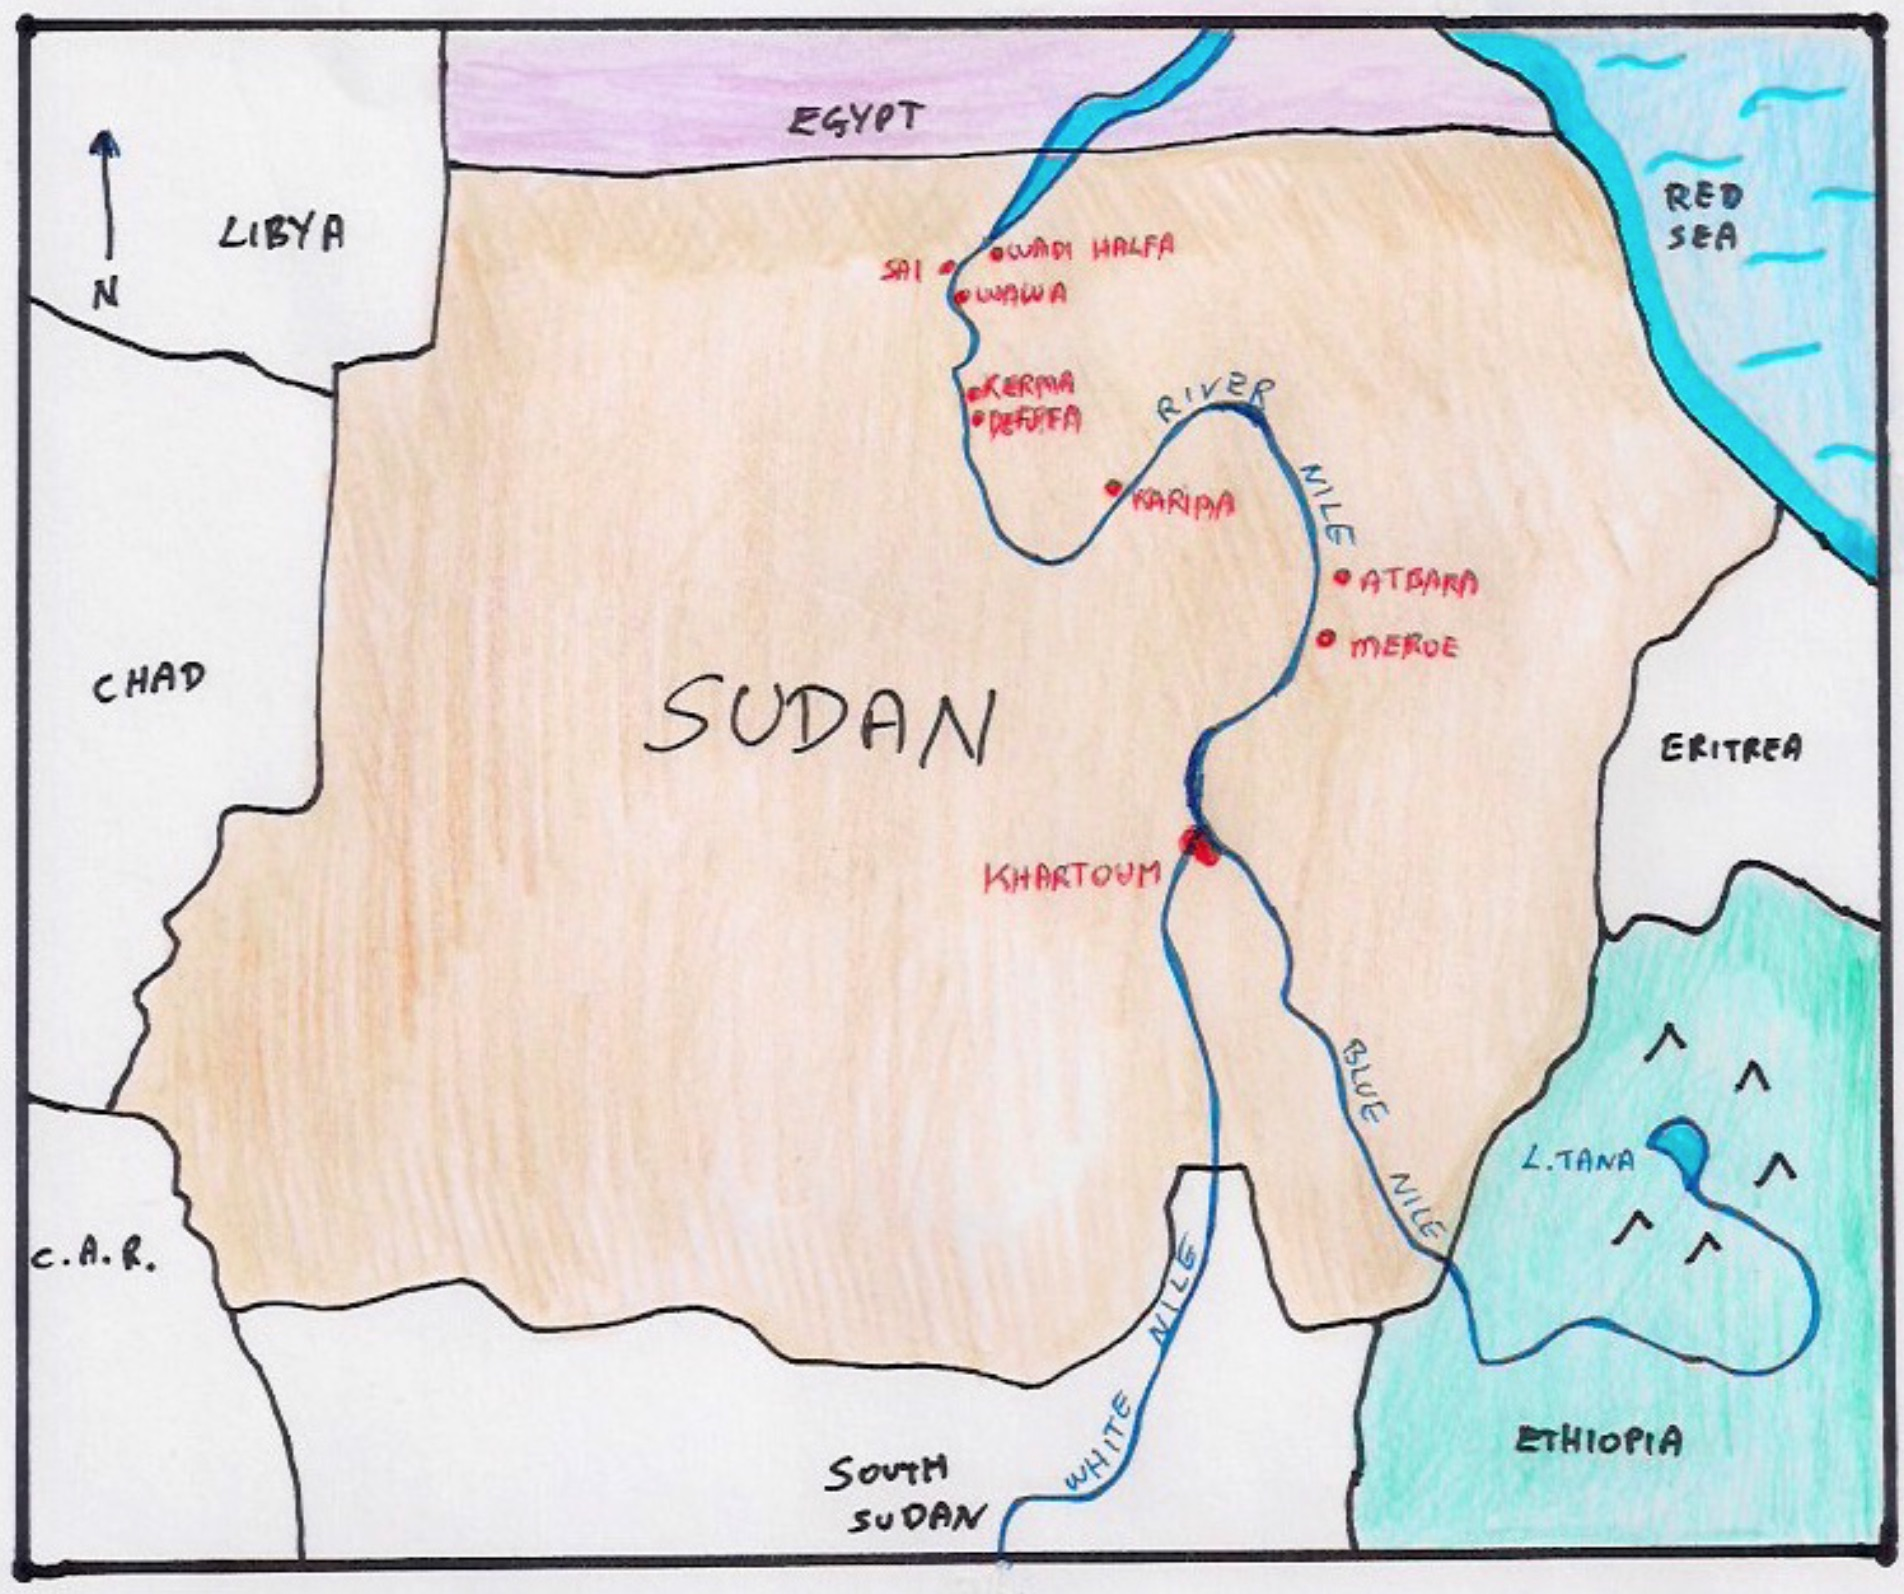 SUDAN Nile River Connections - Map of egypt and sudan